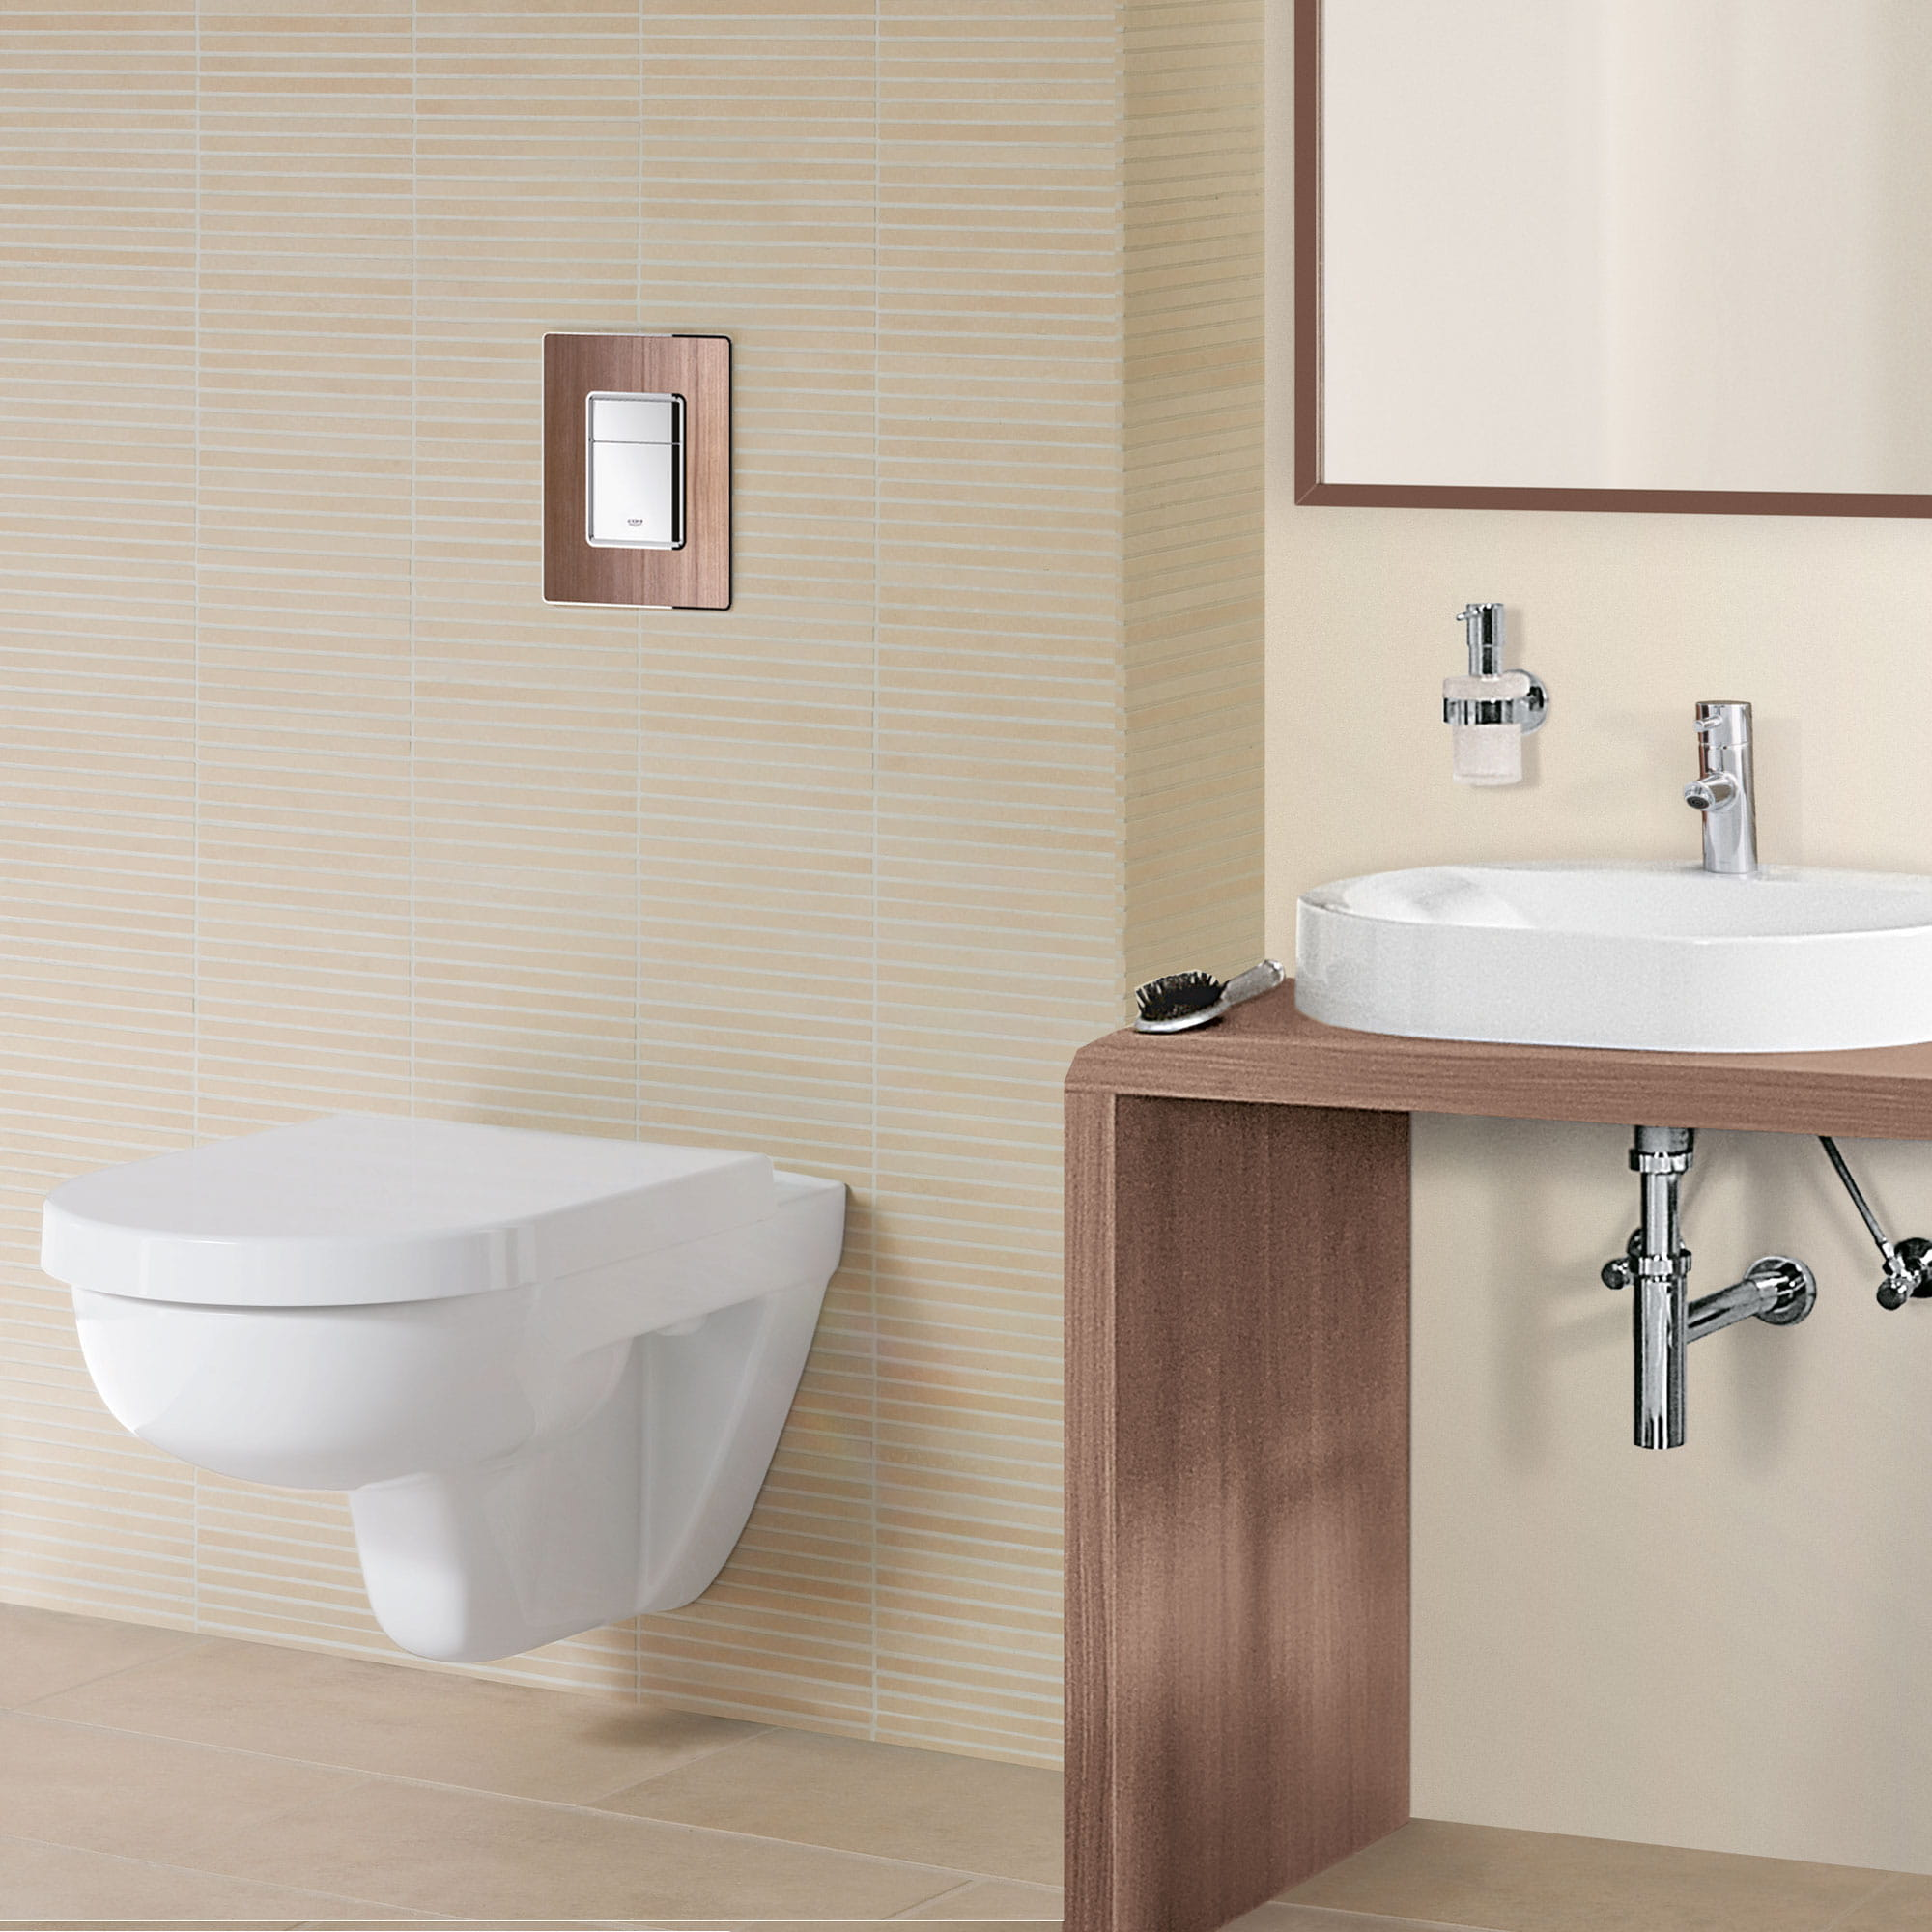 Bathroom with a white flush plate and sink.